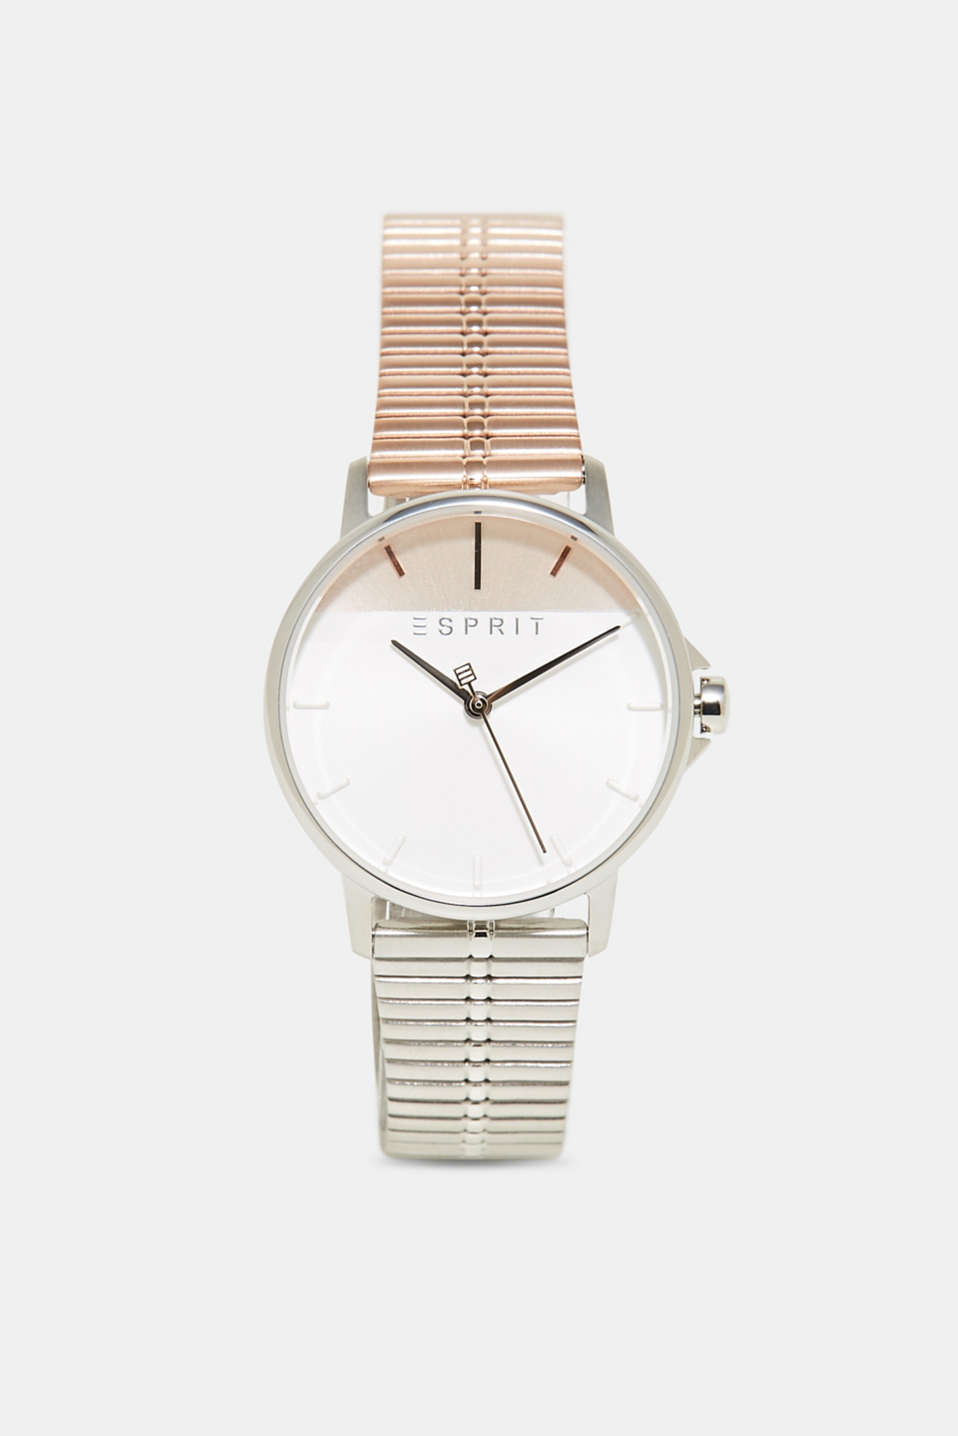 Esprit - Stainless-steel watch with rose gold